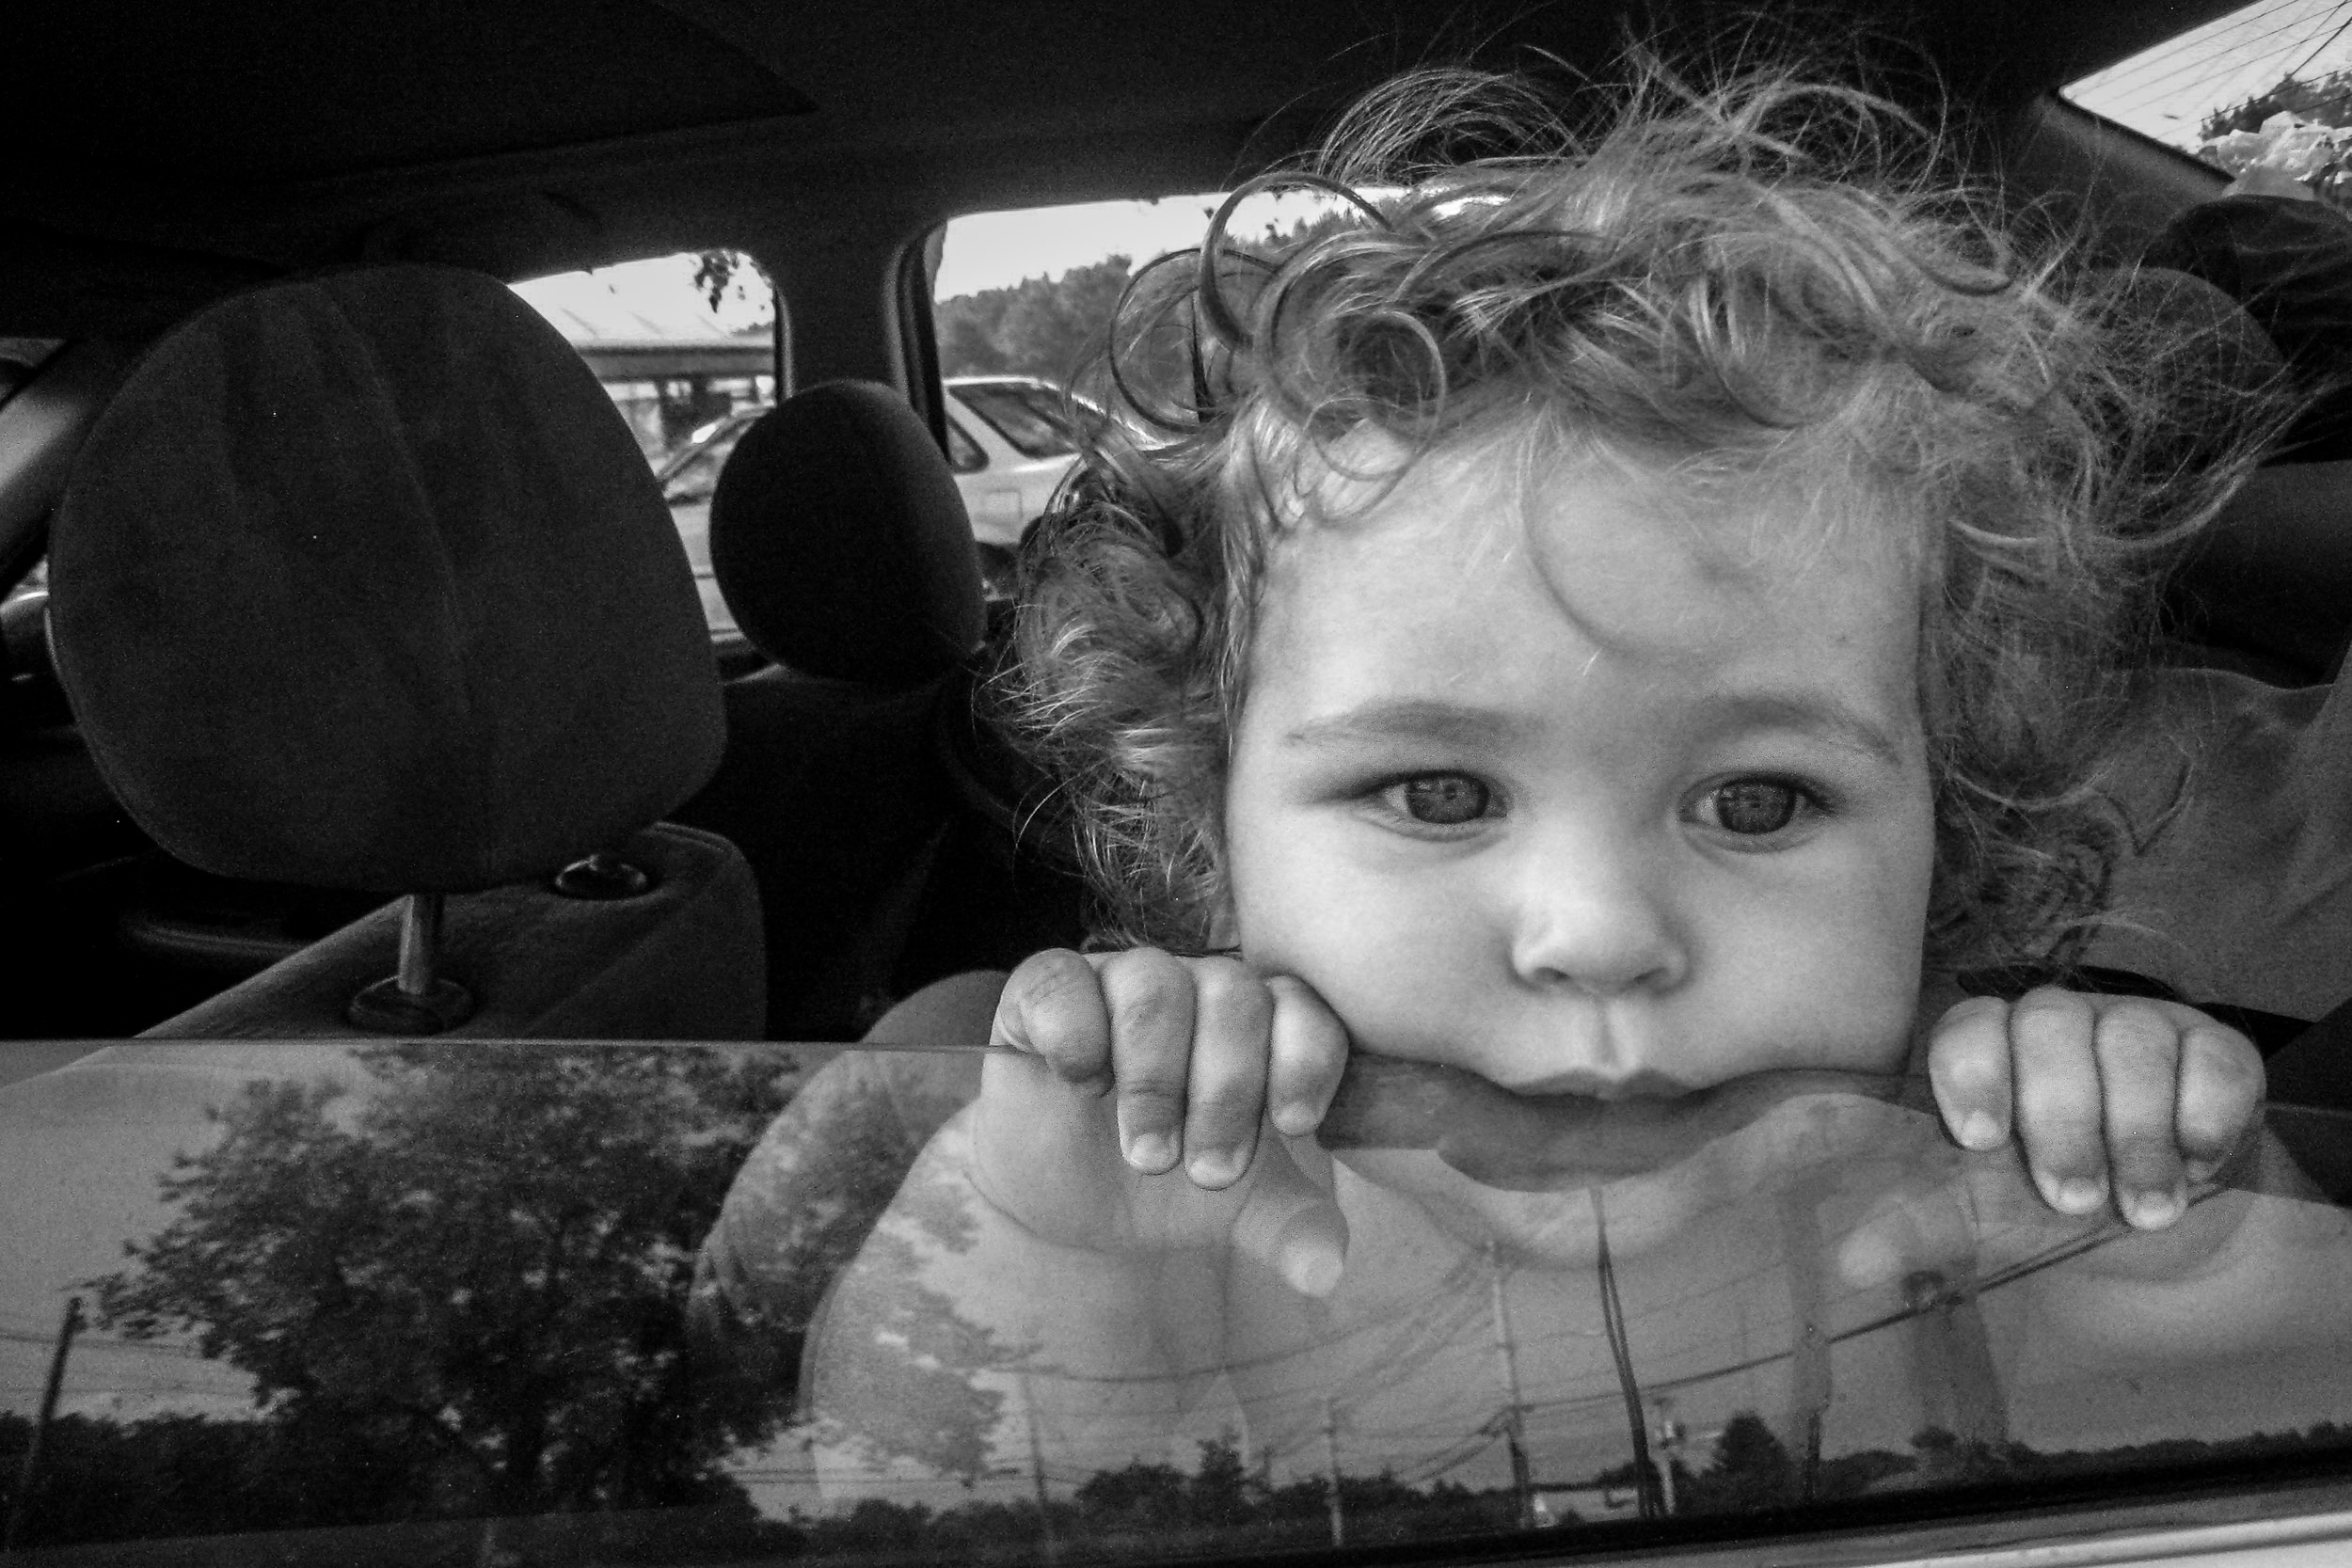 Molly Rees Photo - Black and White Documentary Childhood Photography - Portrait of toddler boy looking out car window by M. Menschel